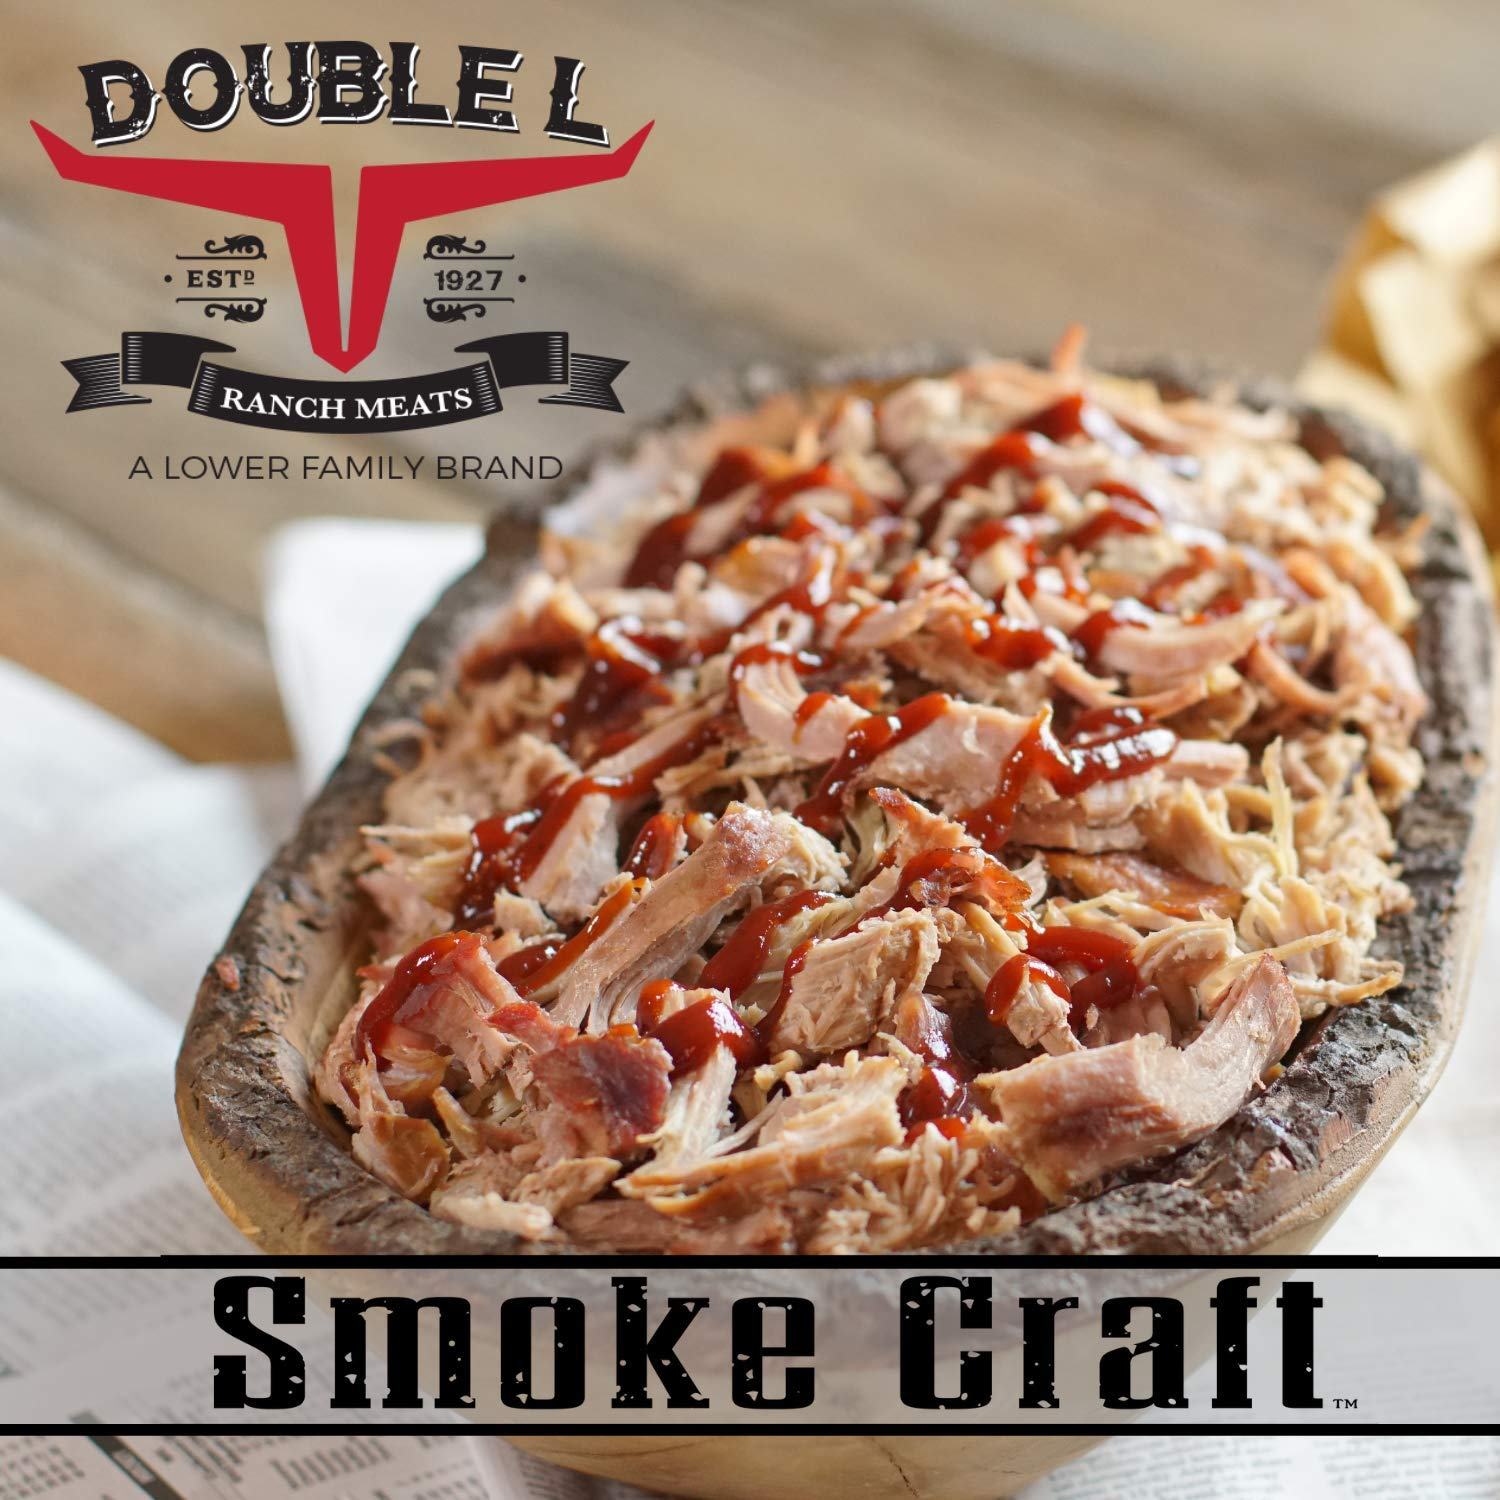 Pulled Pork in Barbecue Sauce by Double L Ranch Meats | Hickory Smoked and Shredded | Ready to Serve | 10 Lbs (2 Pack)